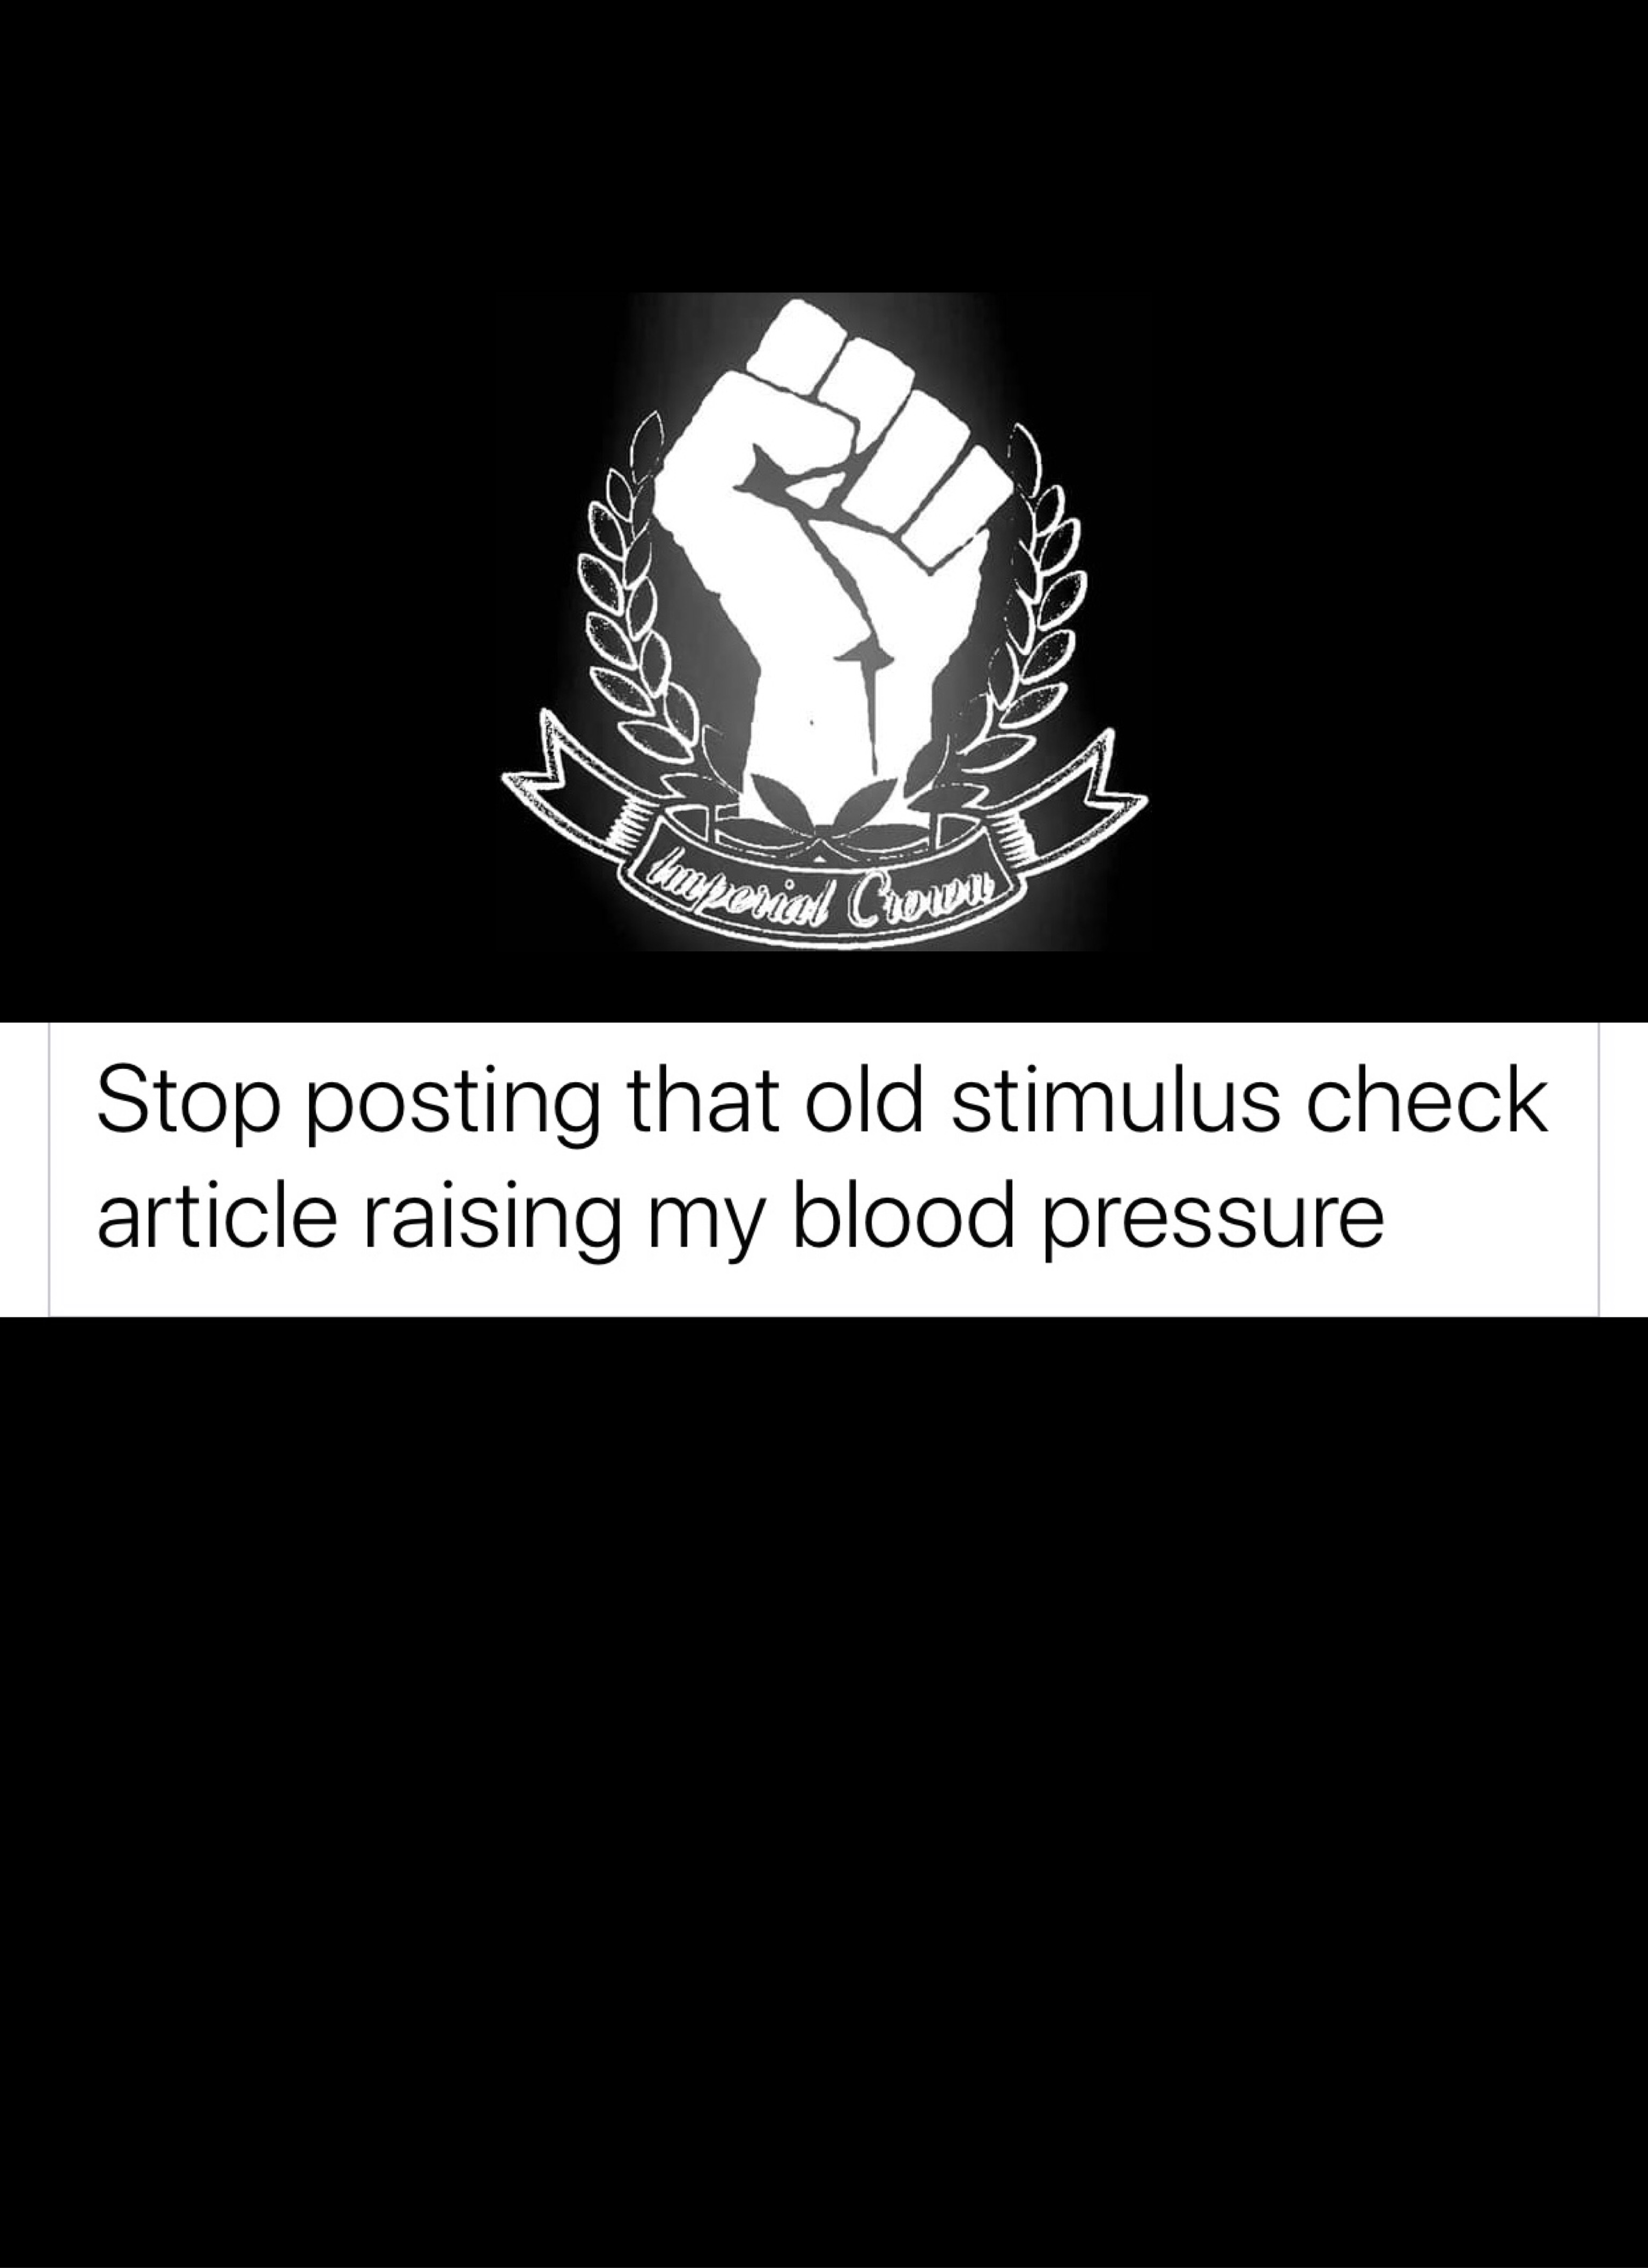 Stop posting that old stimulus check article raising my blood pressure